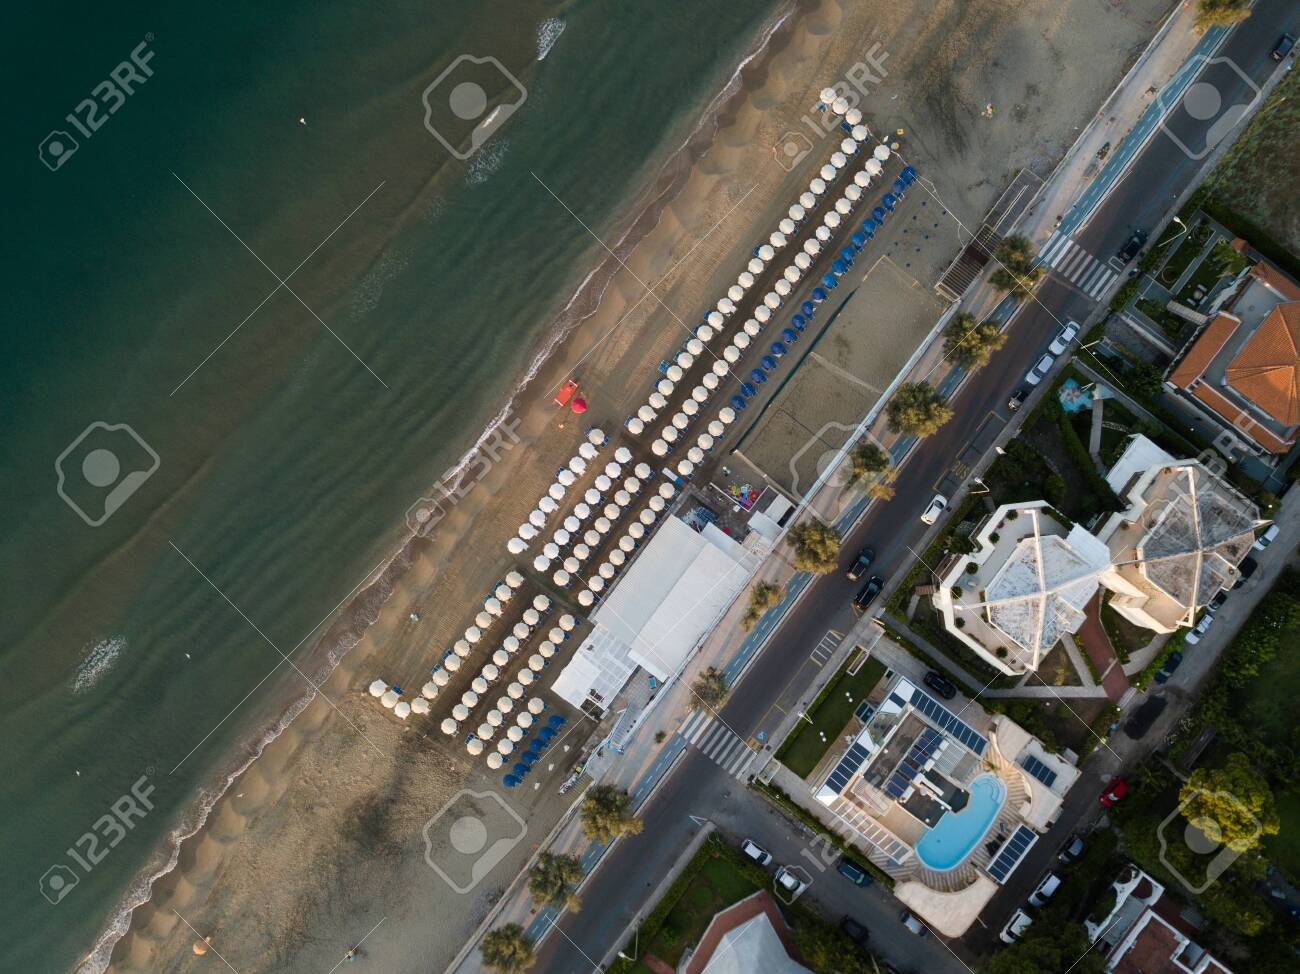 Top view of a coastal town with a beach and beach umbrellas. Terracina, Province of Latina, Lazio Region, Italy - 135780968